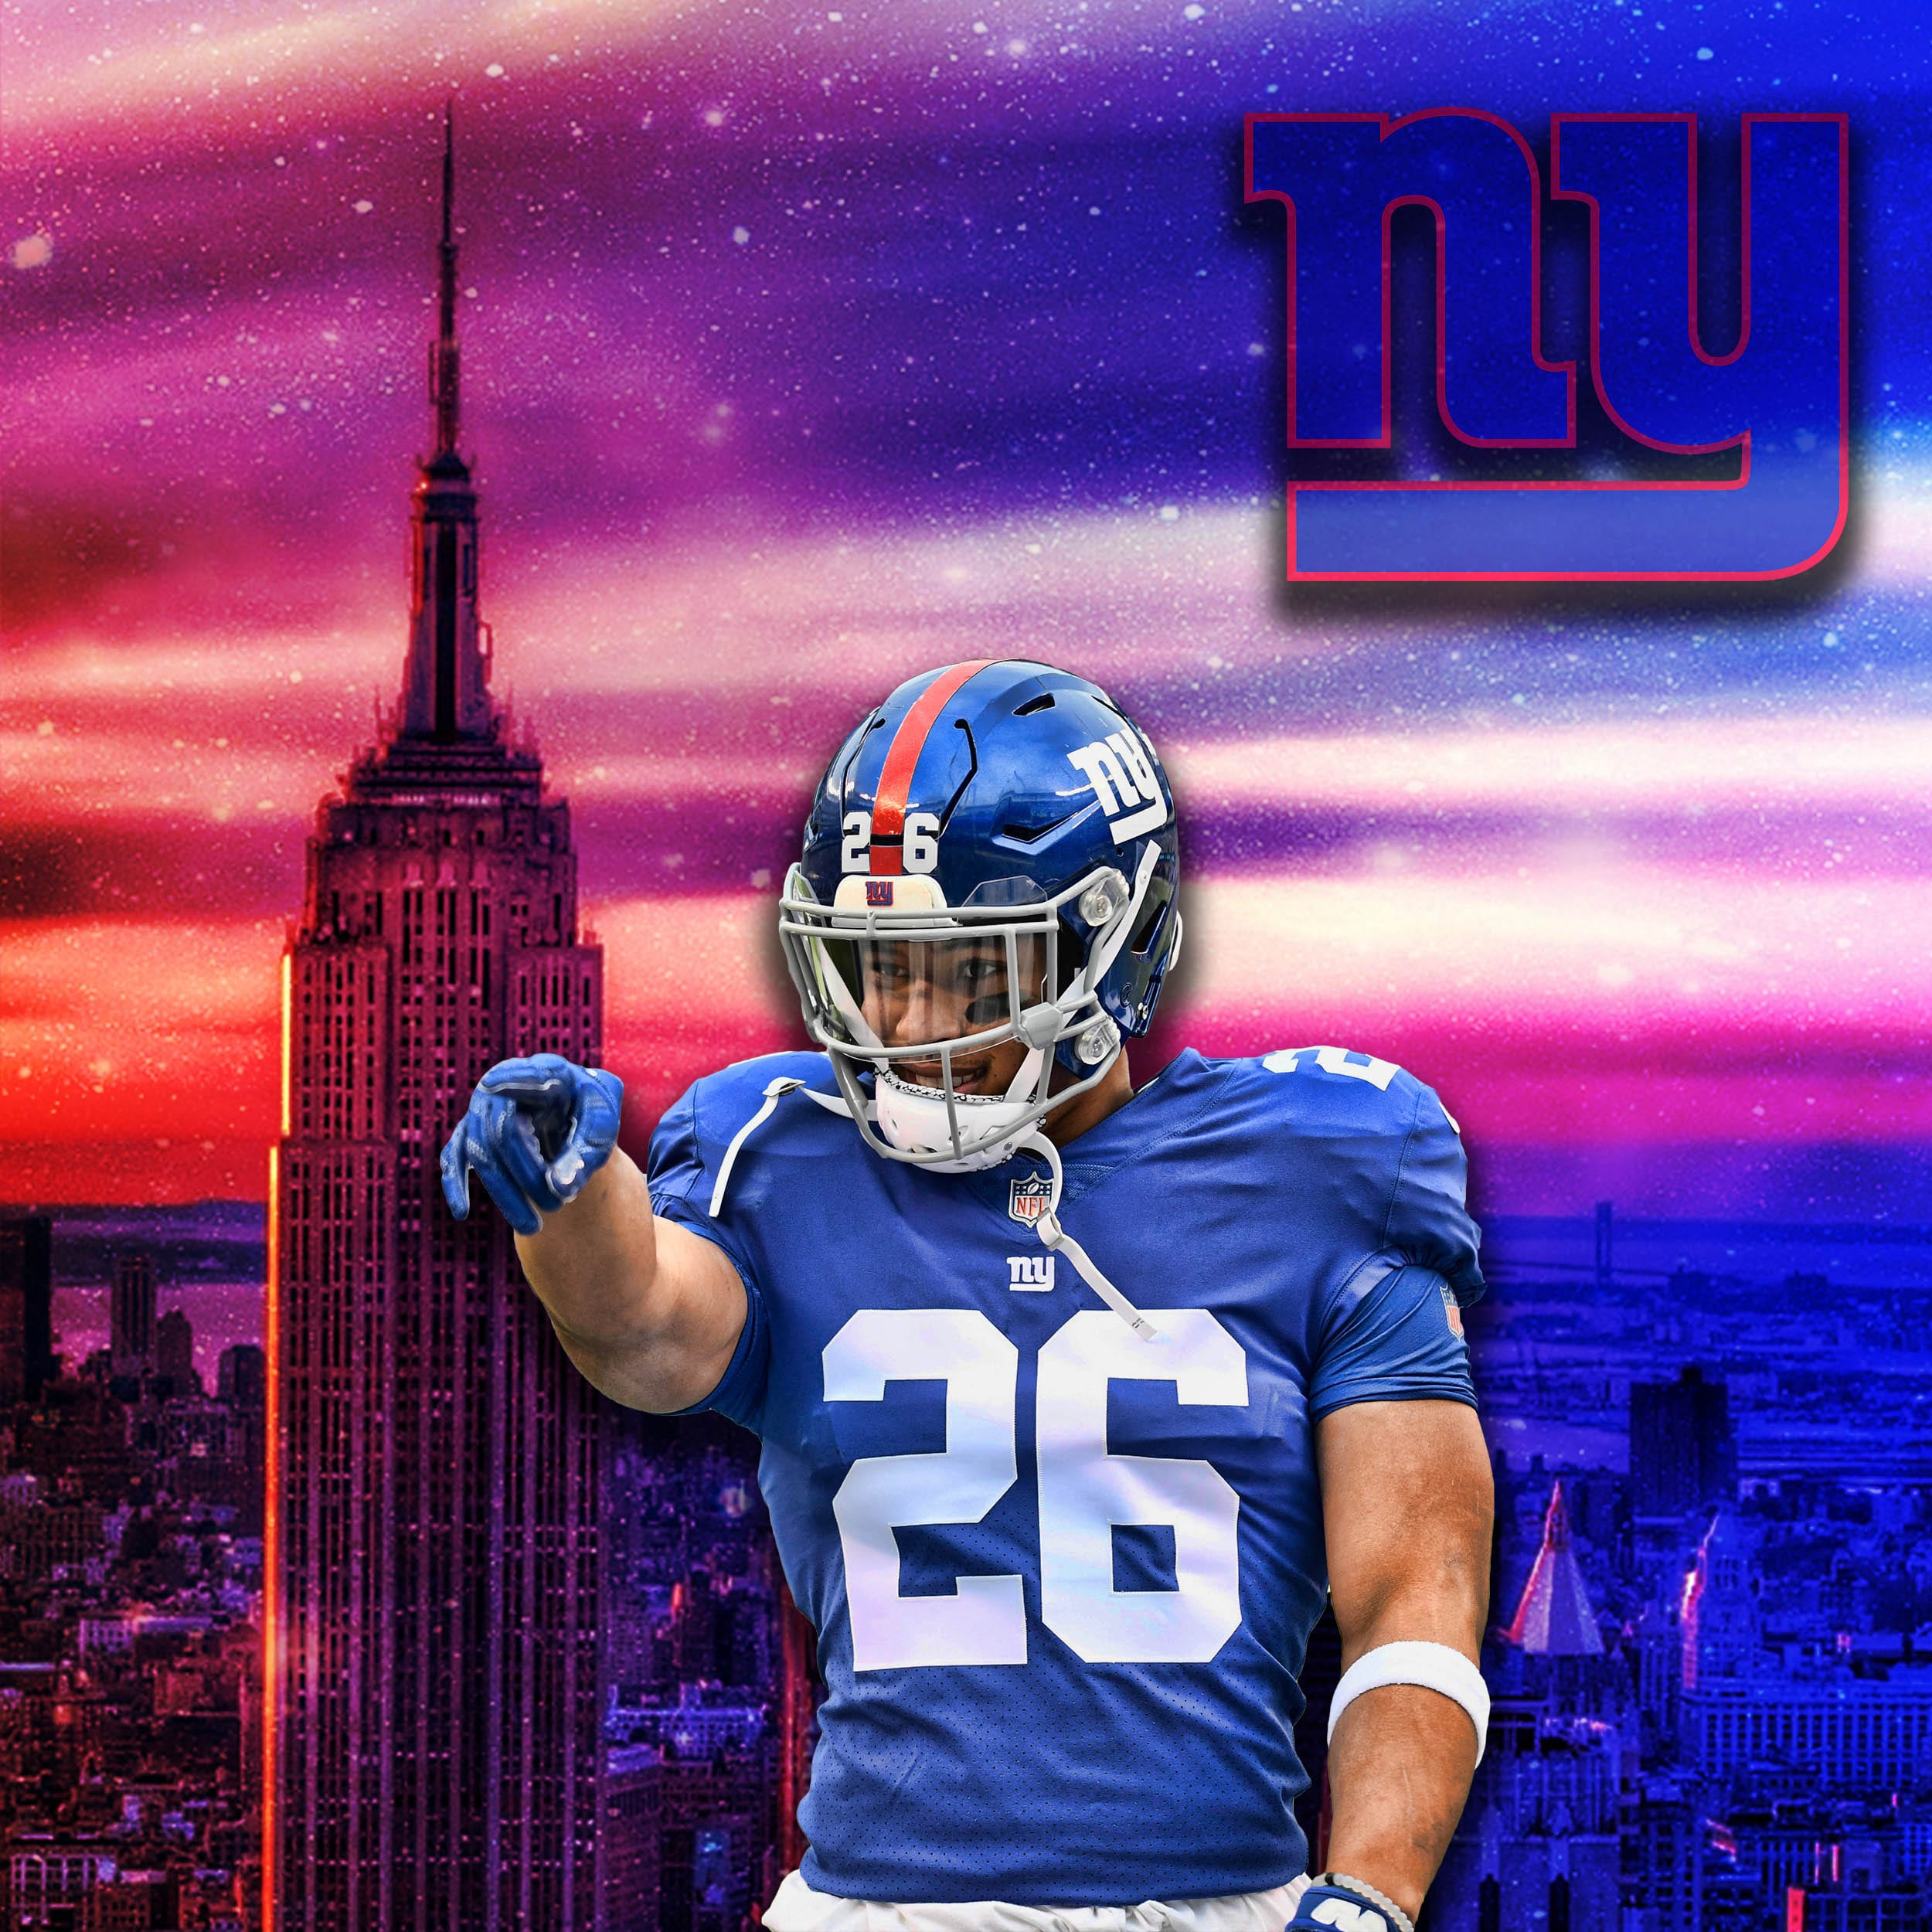 reputable site b86b2 bcd84 New York Giants: Why It Is No Debate That Saquon Barkley Is ...